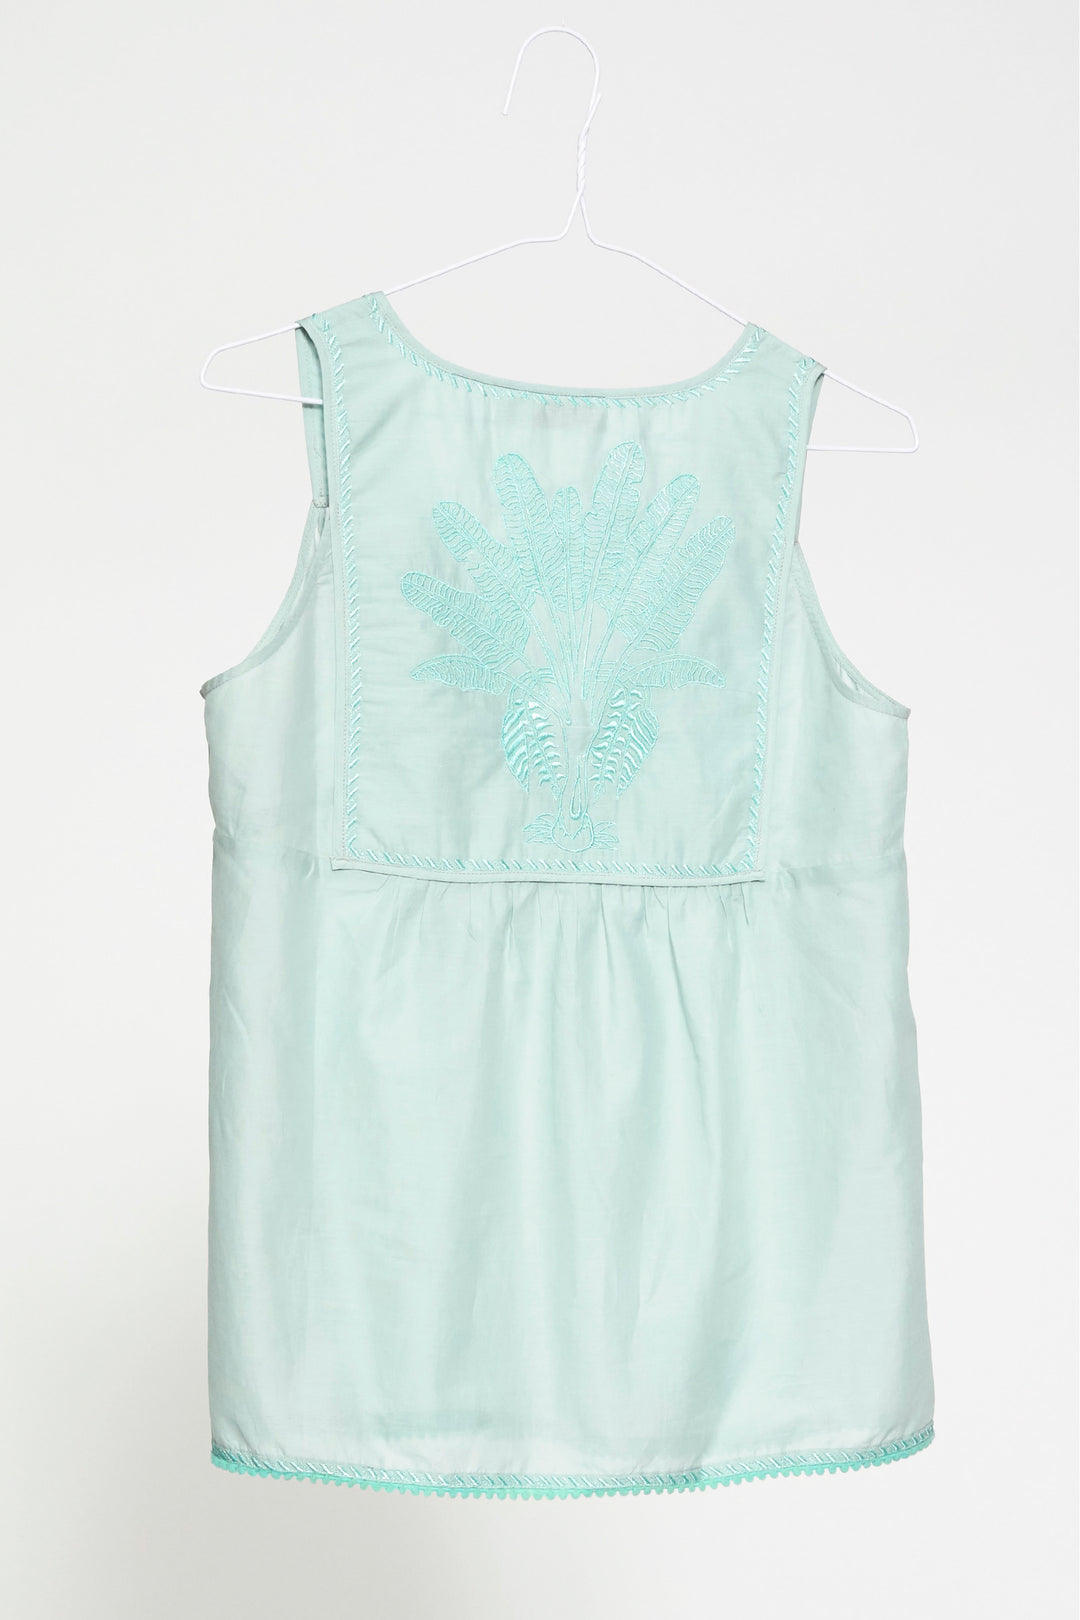 mint green sleeveless embroidered summer palladio camisole top foundling